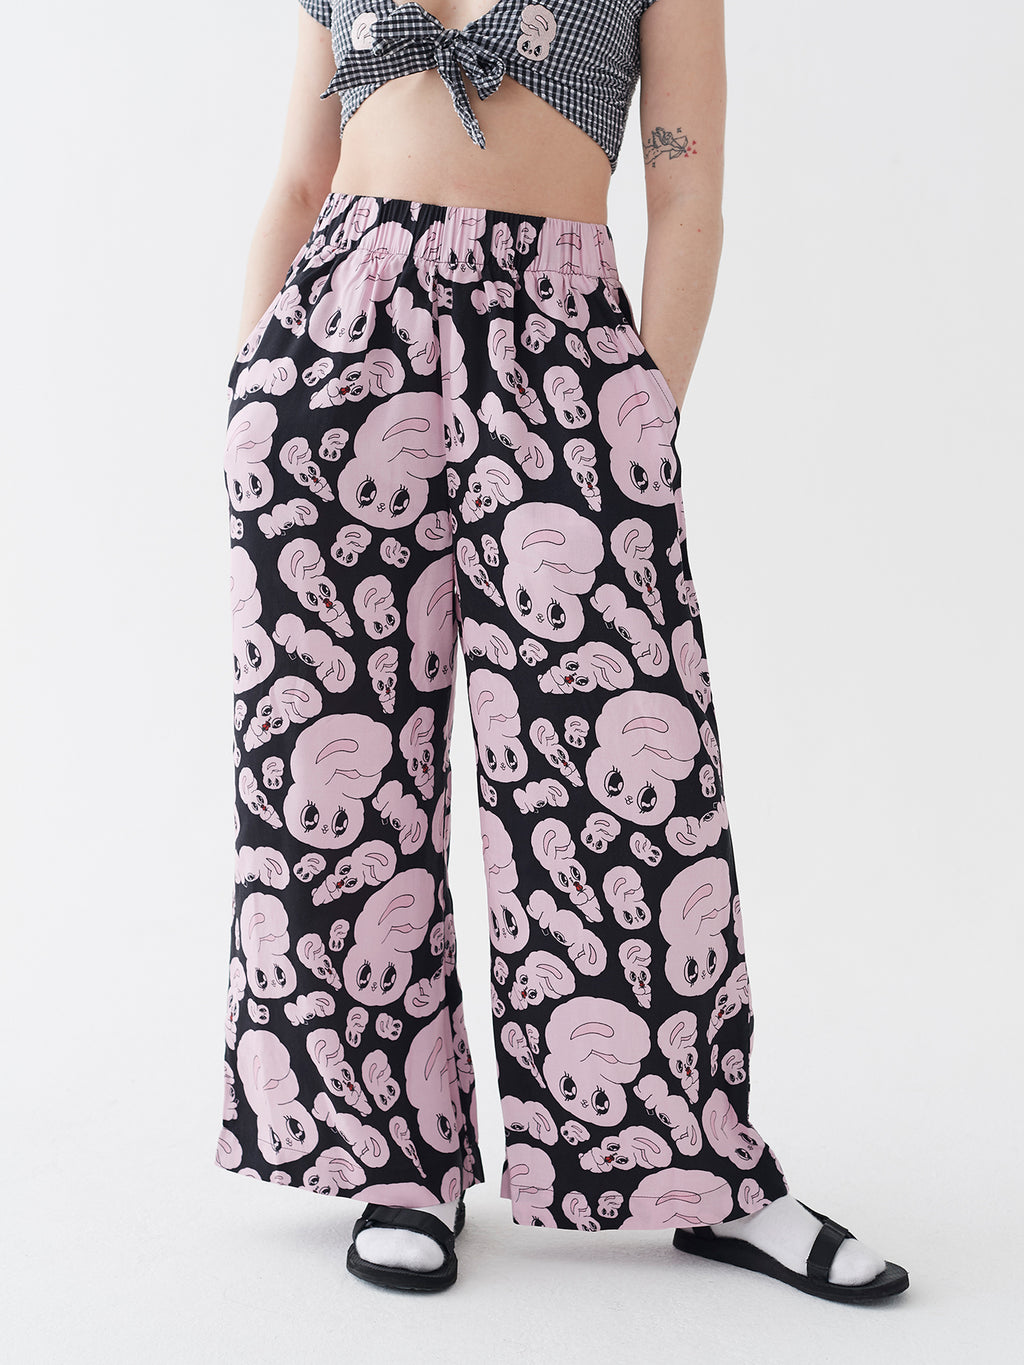 Esther Loves Oaf All Over Bunny Pants